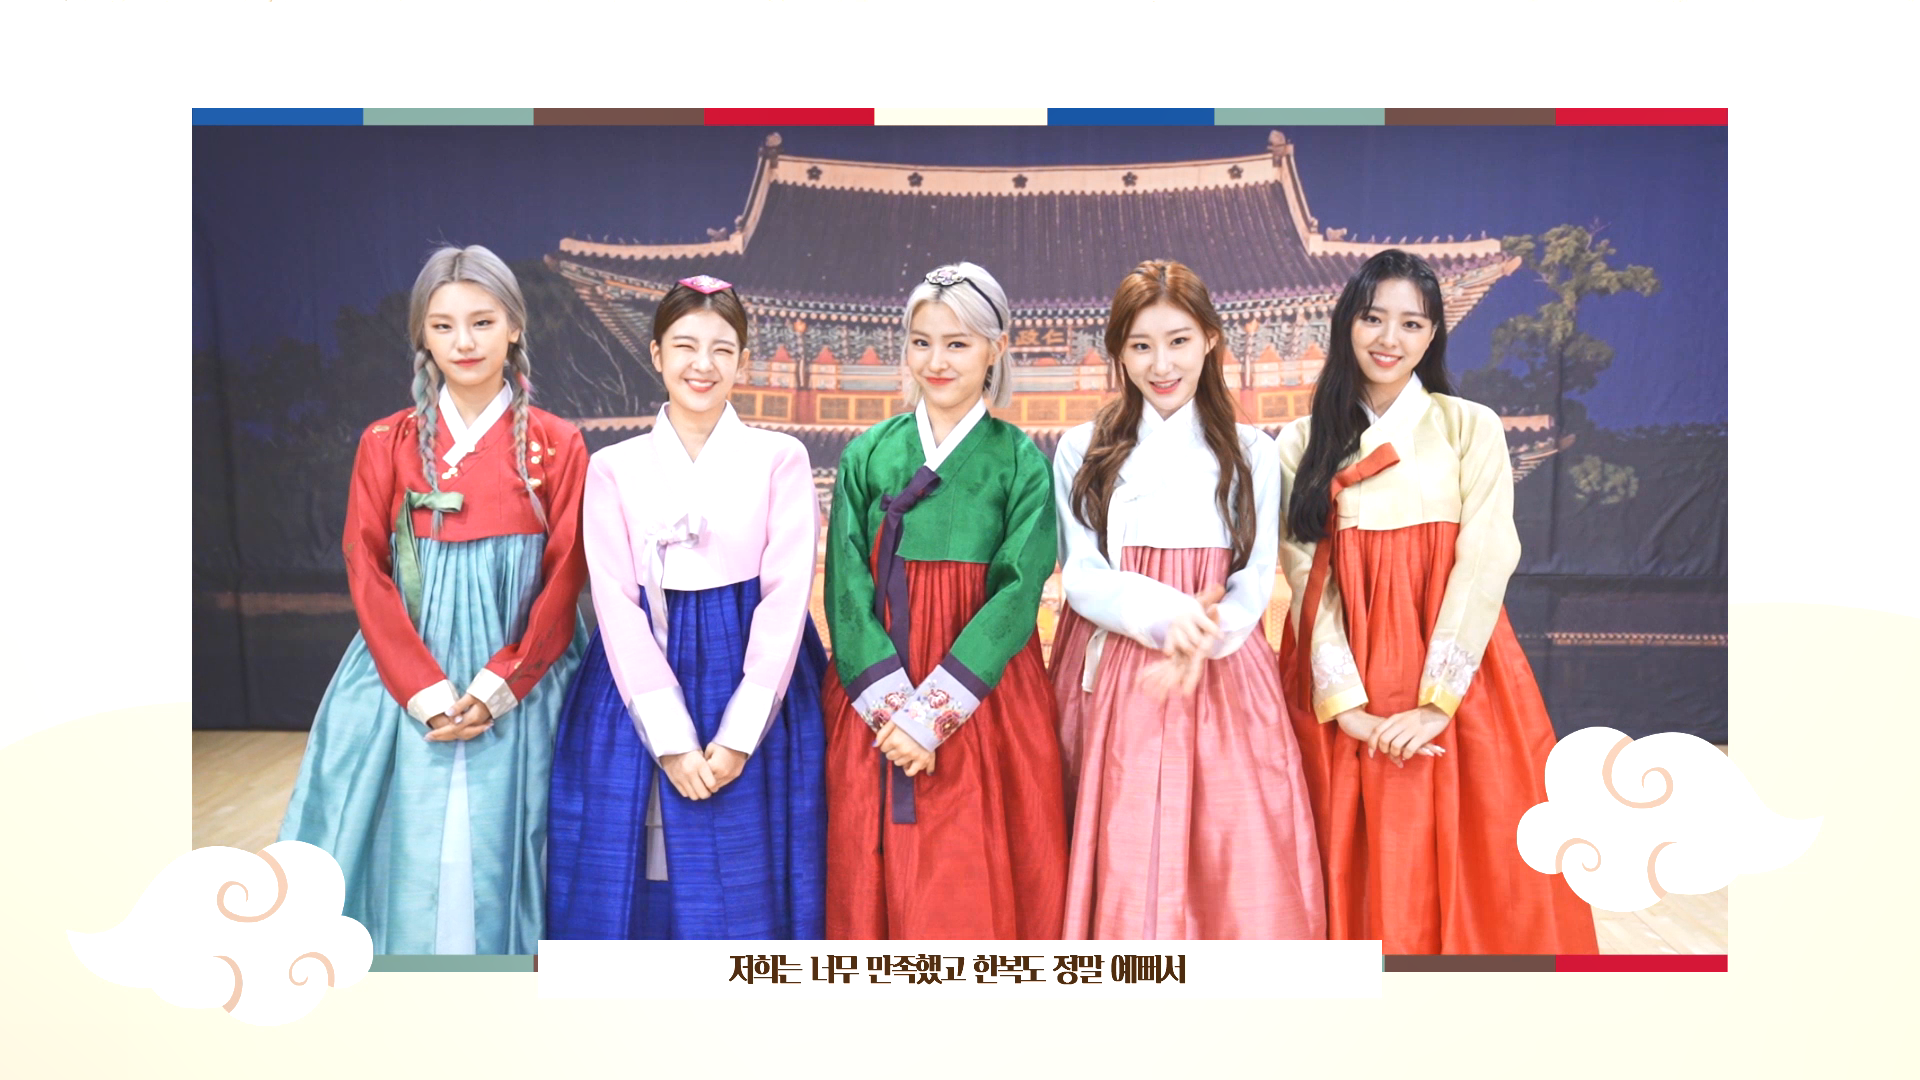 """Happy Chuseok"" Message from ITZY(있지)"